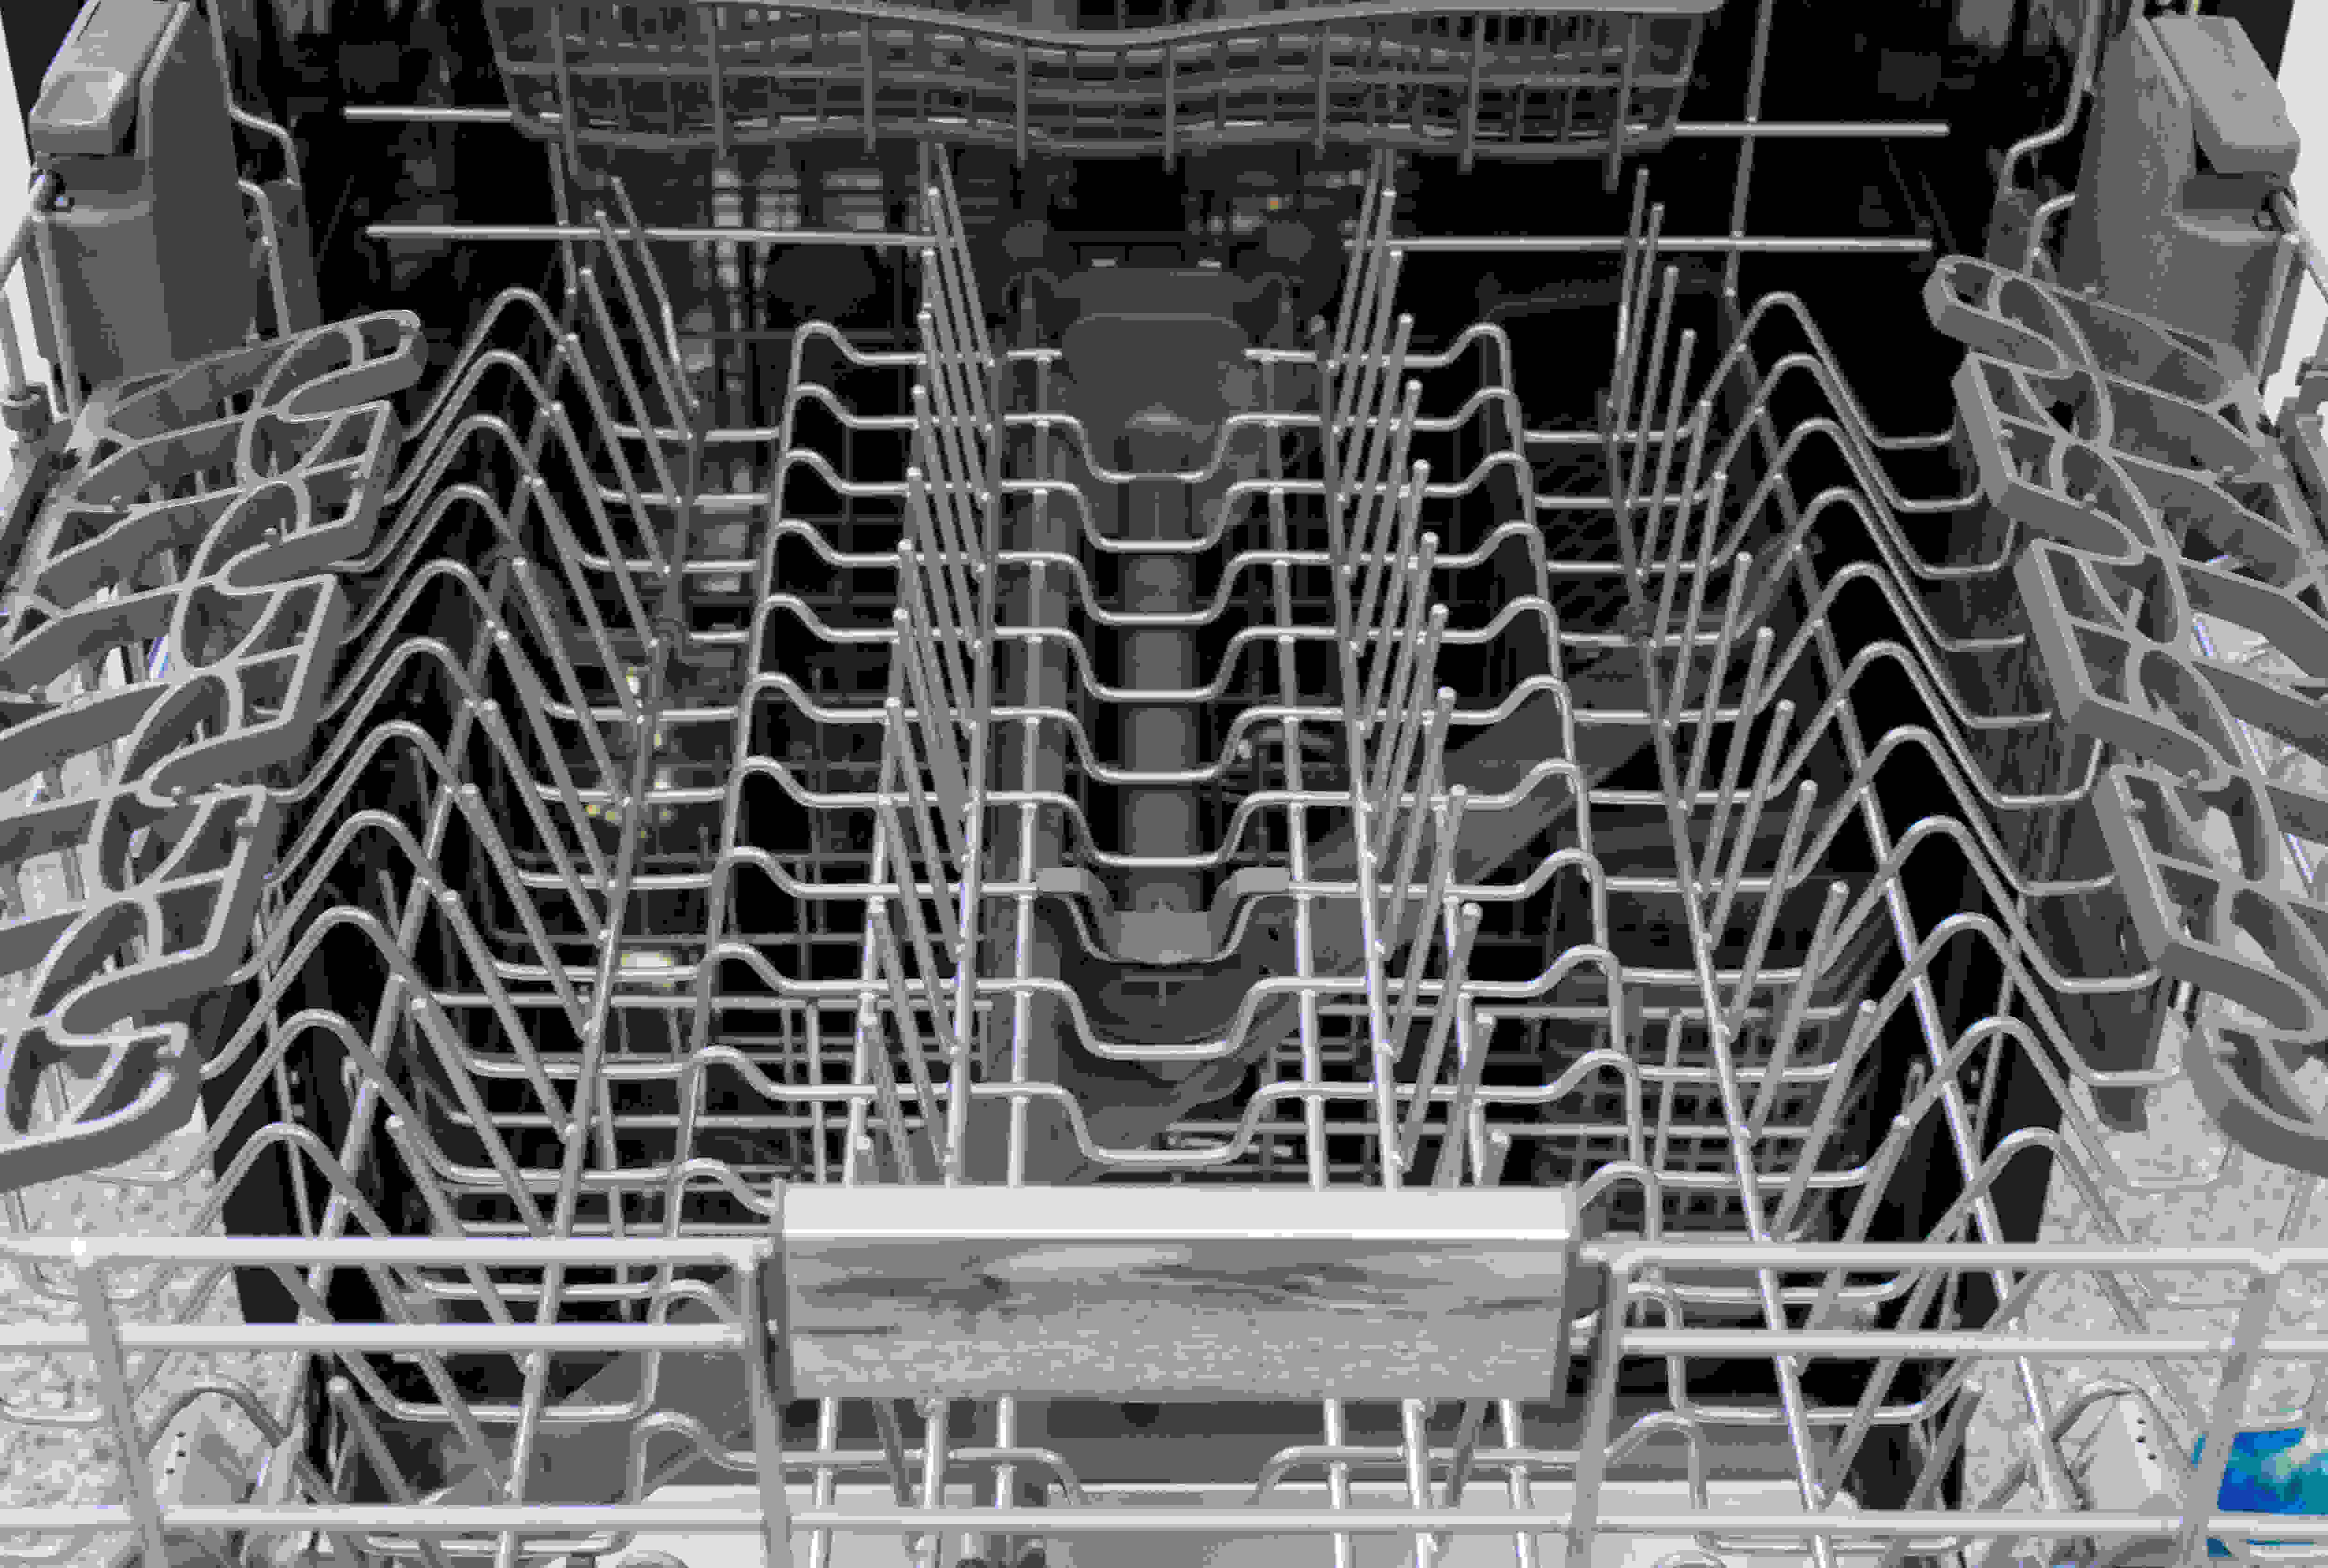 A wide view of the entire upper rack